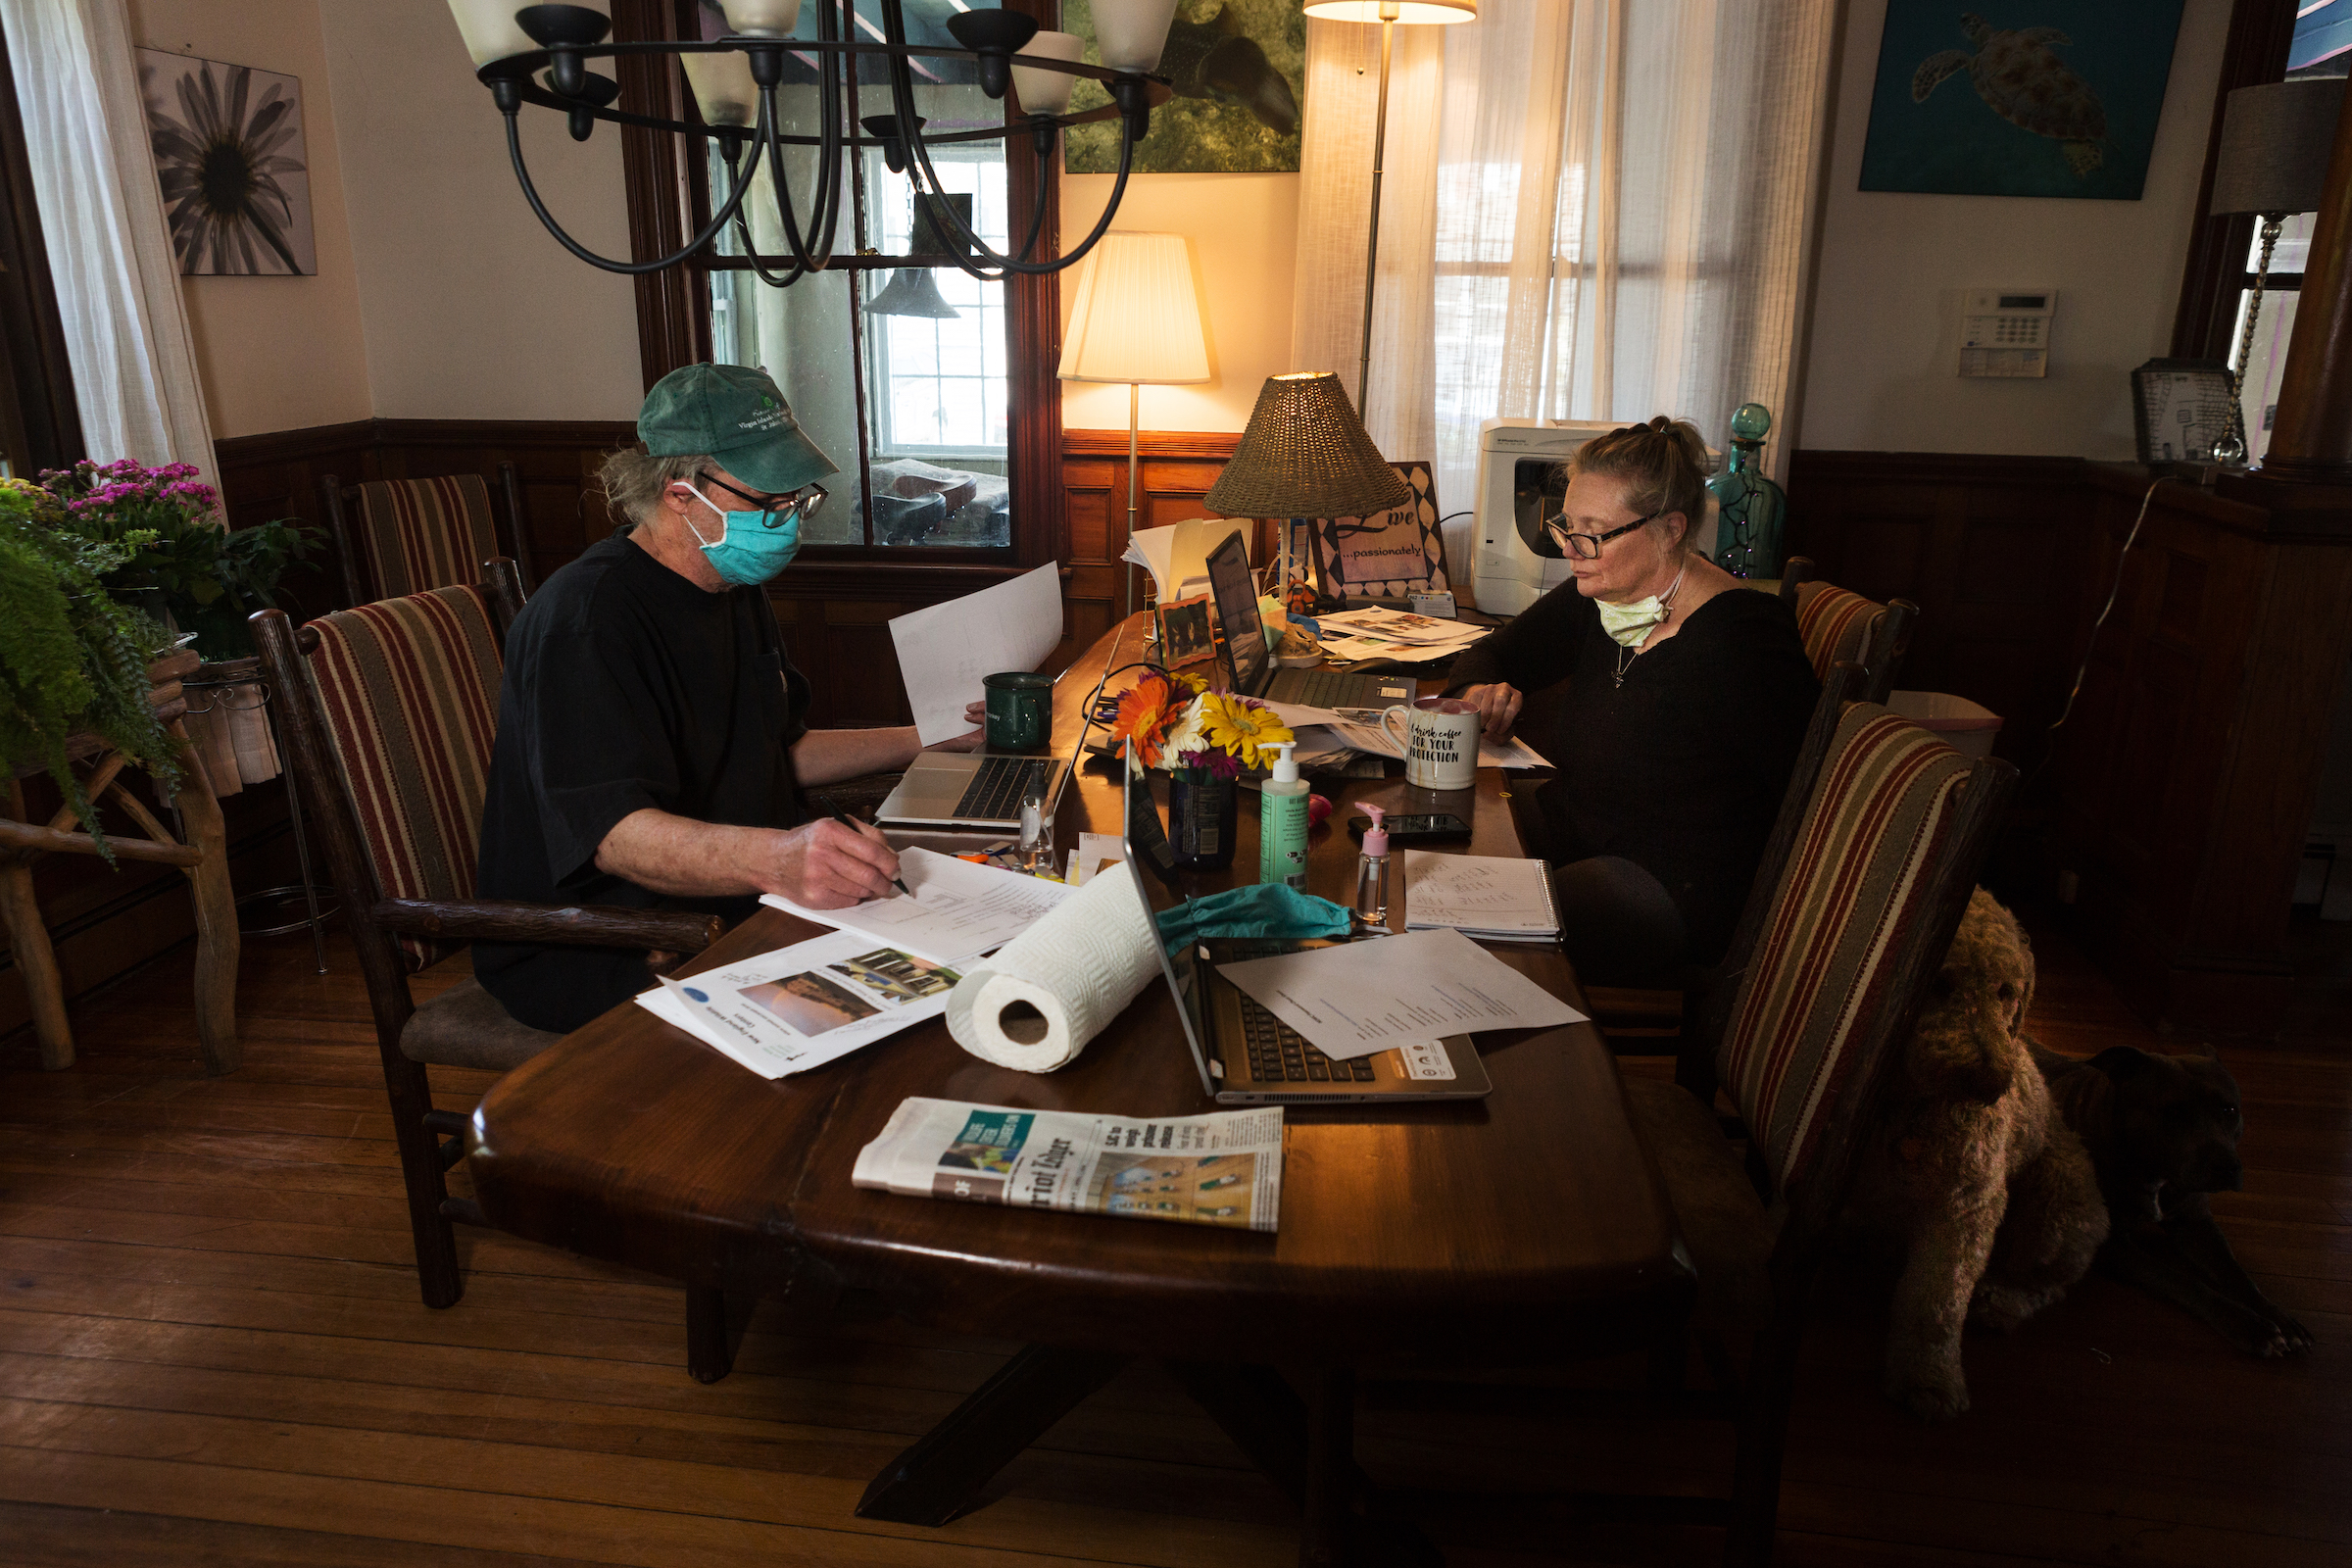 Dr. Greg Mertz (left) of the New England Wildlife Center and Katrina Bergman (right) work at the table in their home in Hull, Massachusetts. Mertz and Bergman are working on a bill that would allow veterinarians and licensed rehabilitators to use telehealth technologies to help diagnose wild animals.